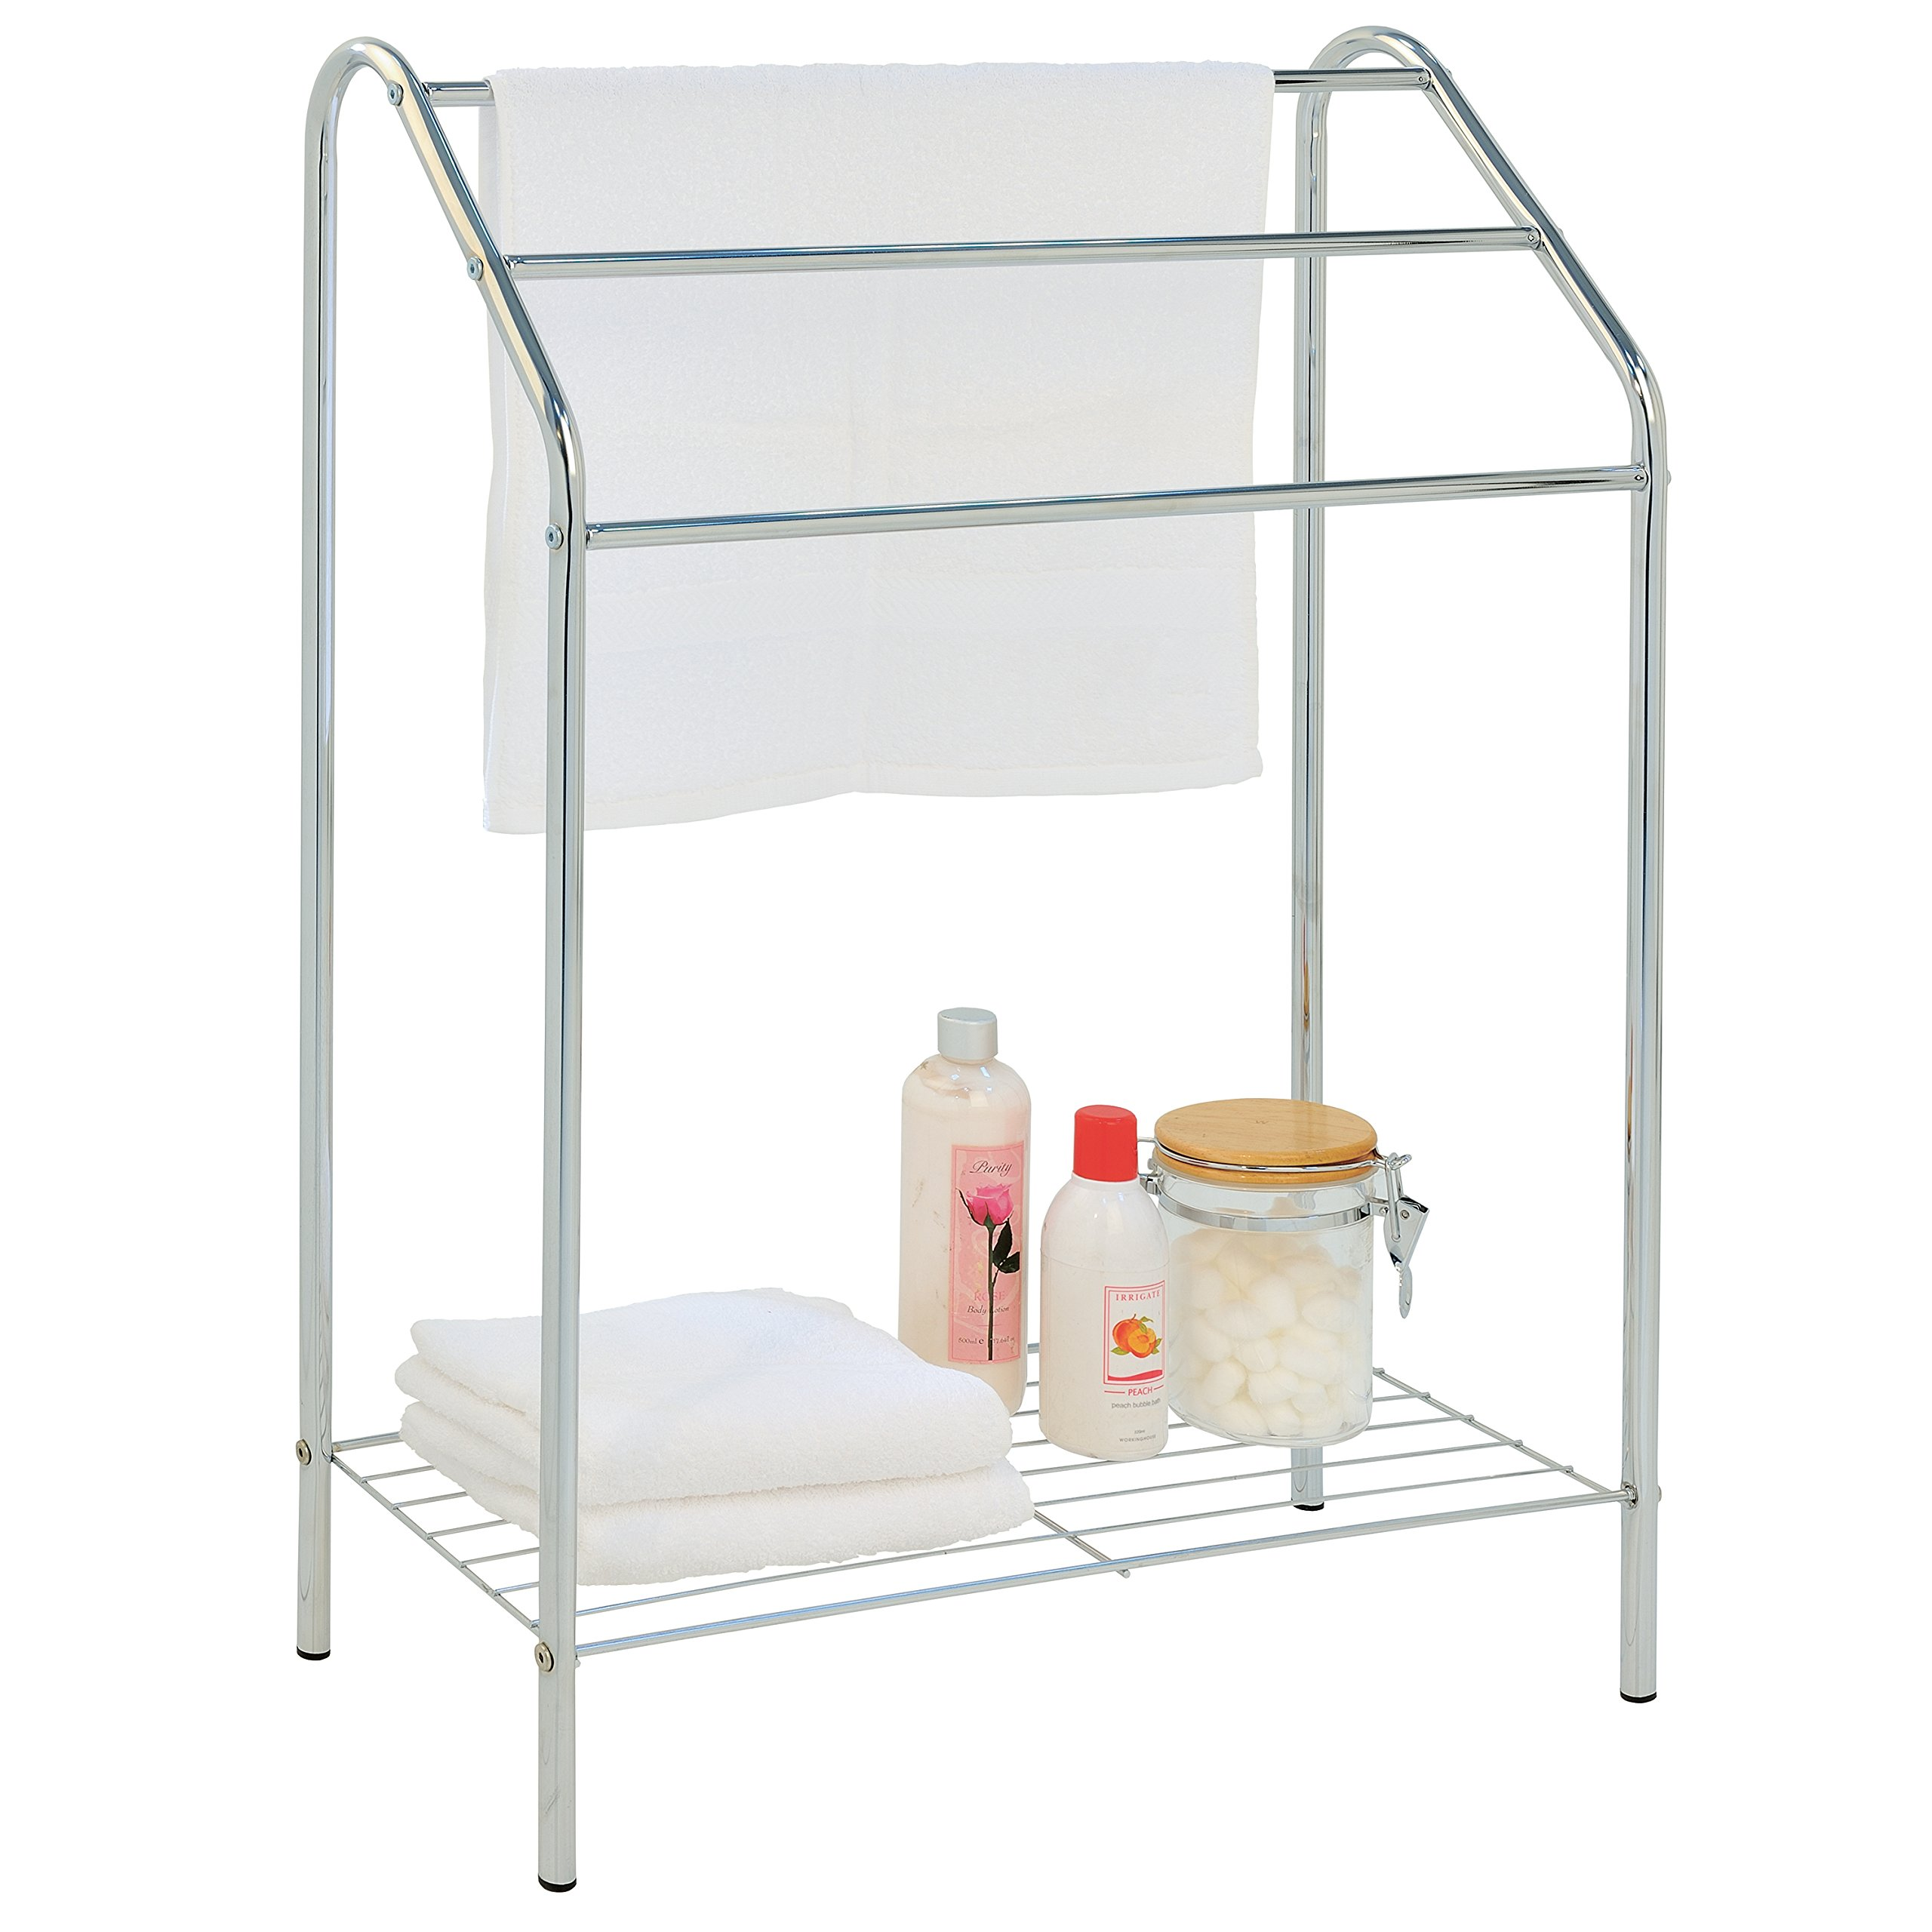 MyGift Freestanding 3 Tier Metal Towel Rack, Chrome Bathroom Towel Bar, Silver-Tone by MyGift